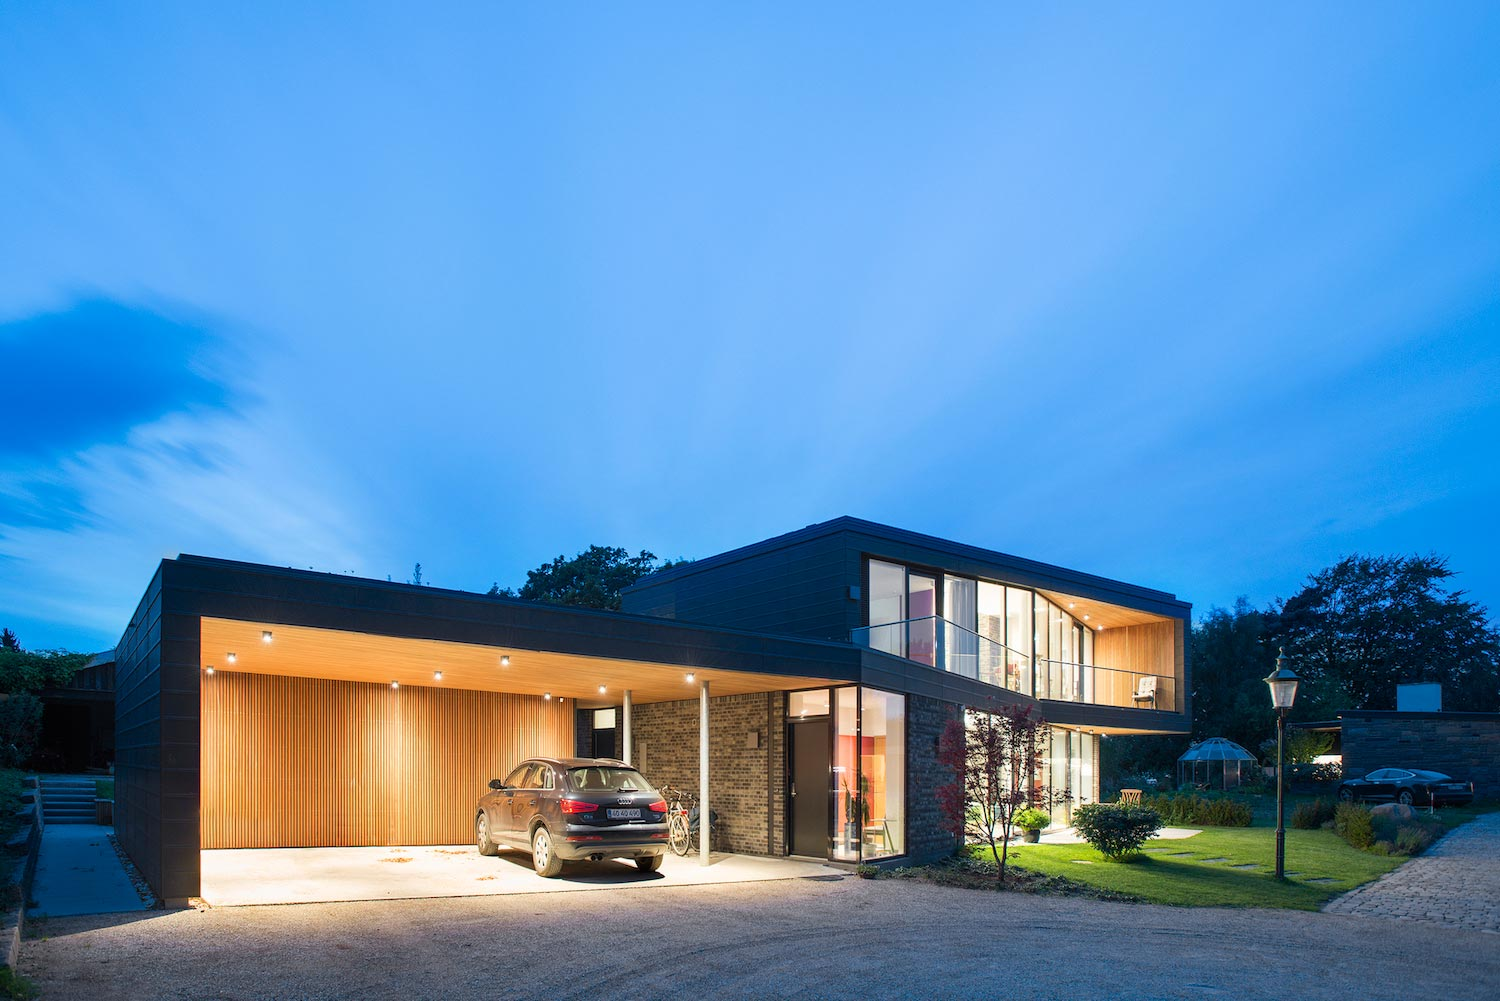 danish homes Danish holiday homes holiday in denmark are you thinking about spending your next holiday in denmark we have many holiday homes in comfortable surroundings.